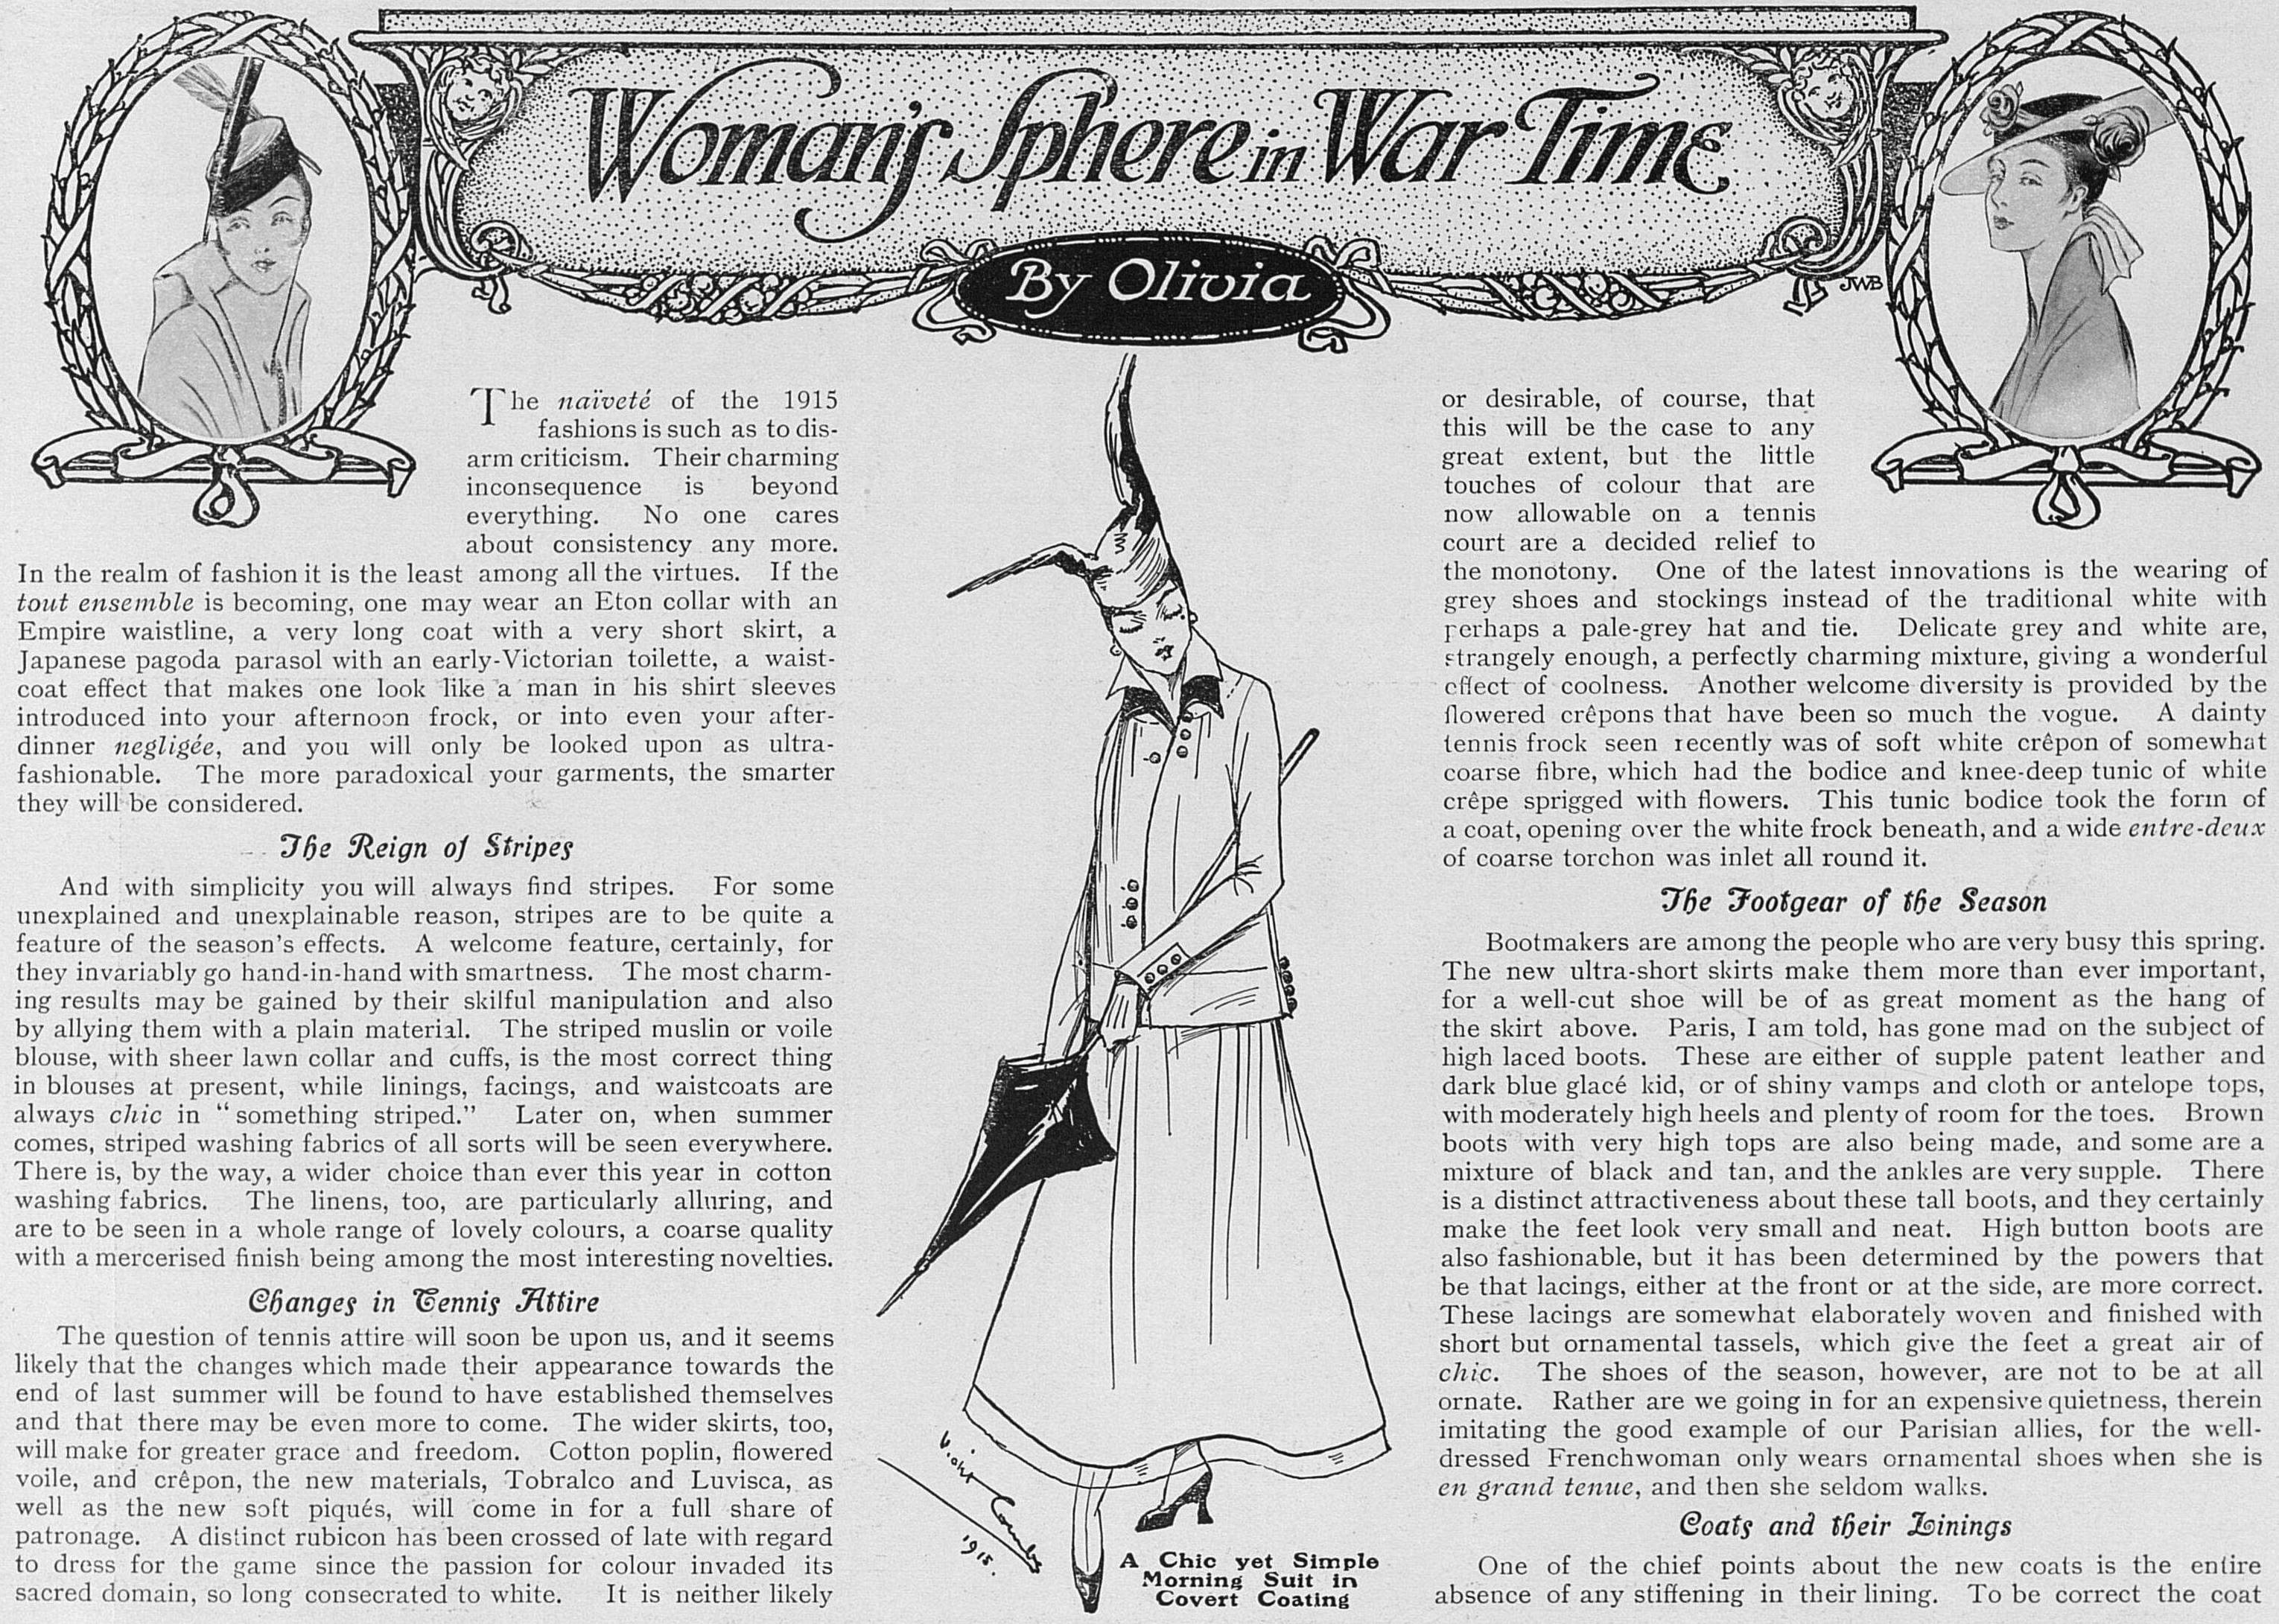 WomansSphereInWarTime_1May1915